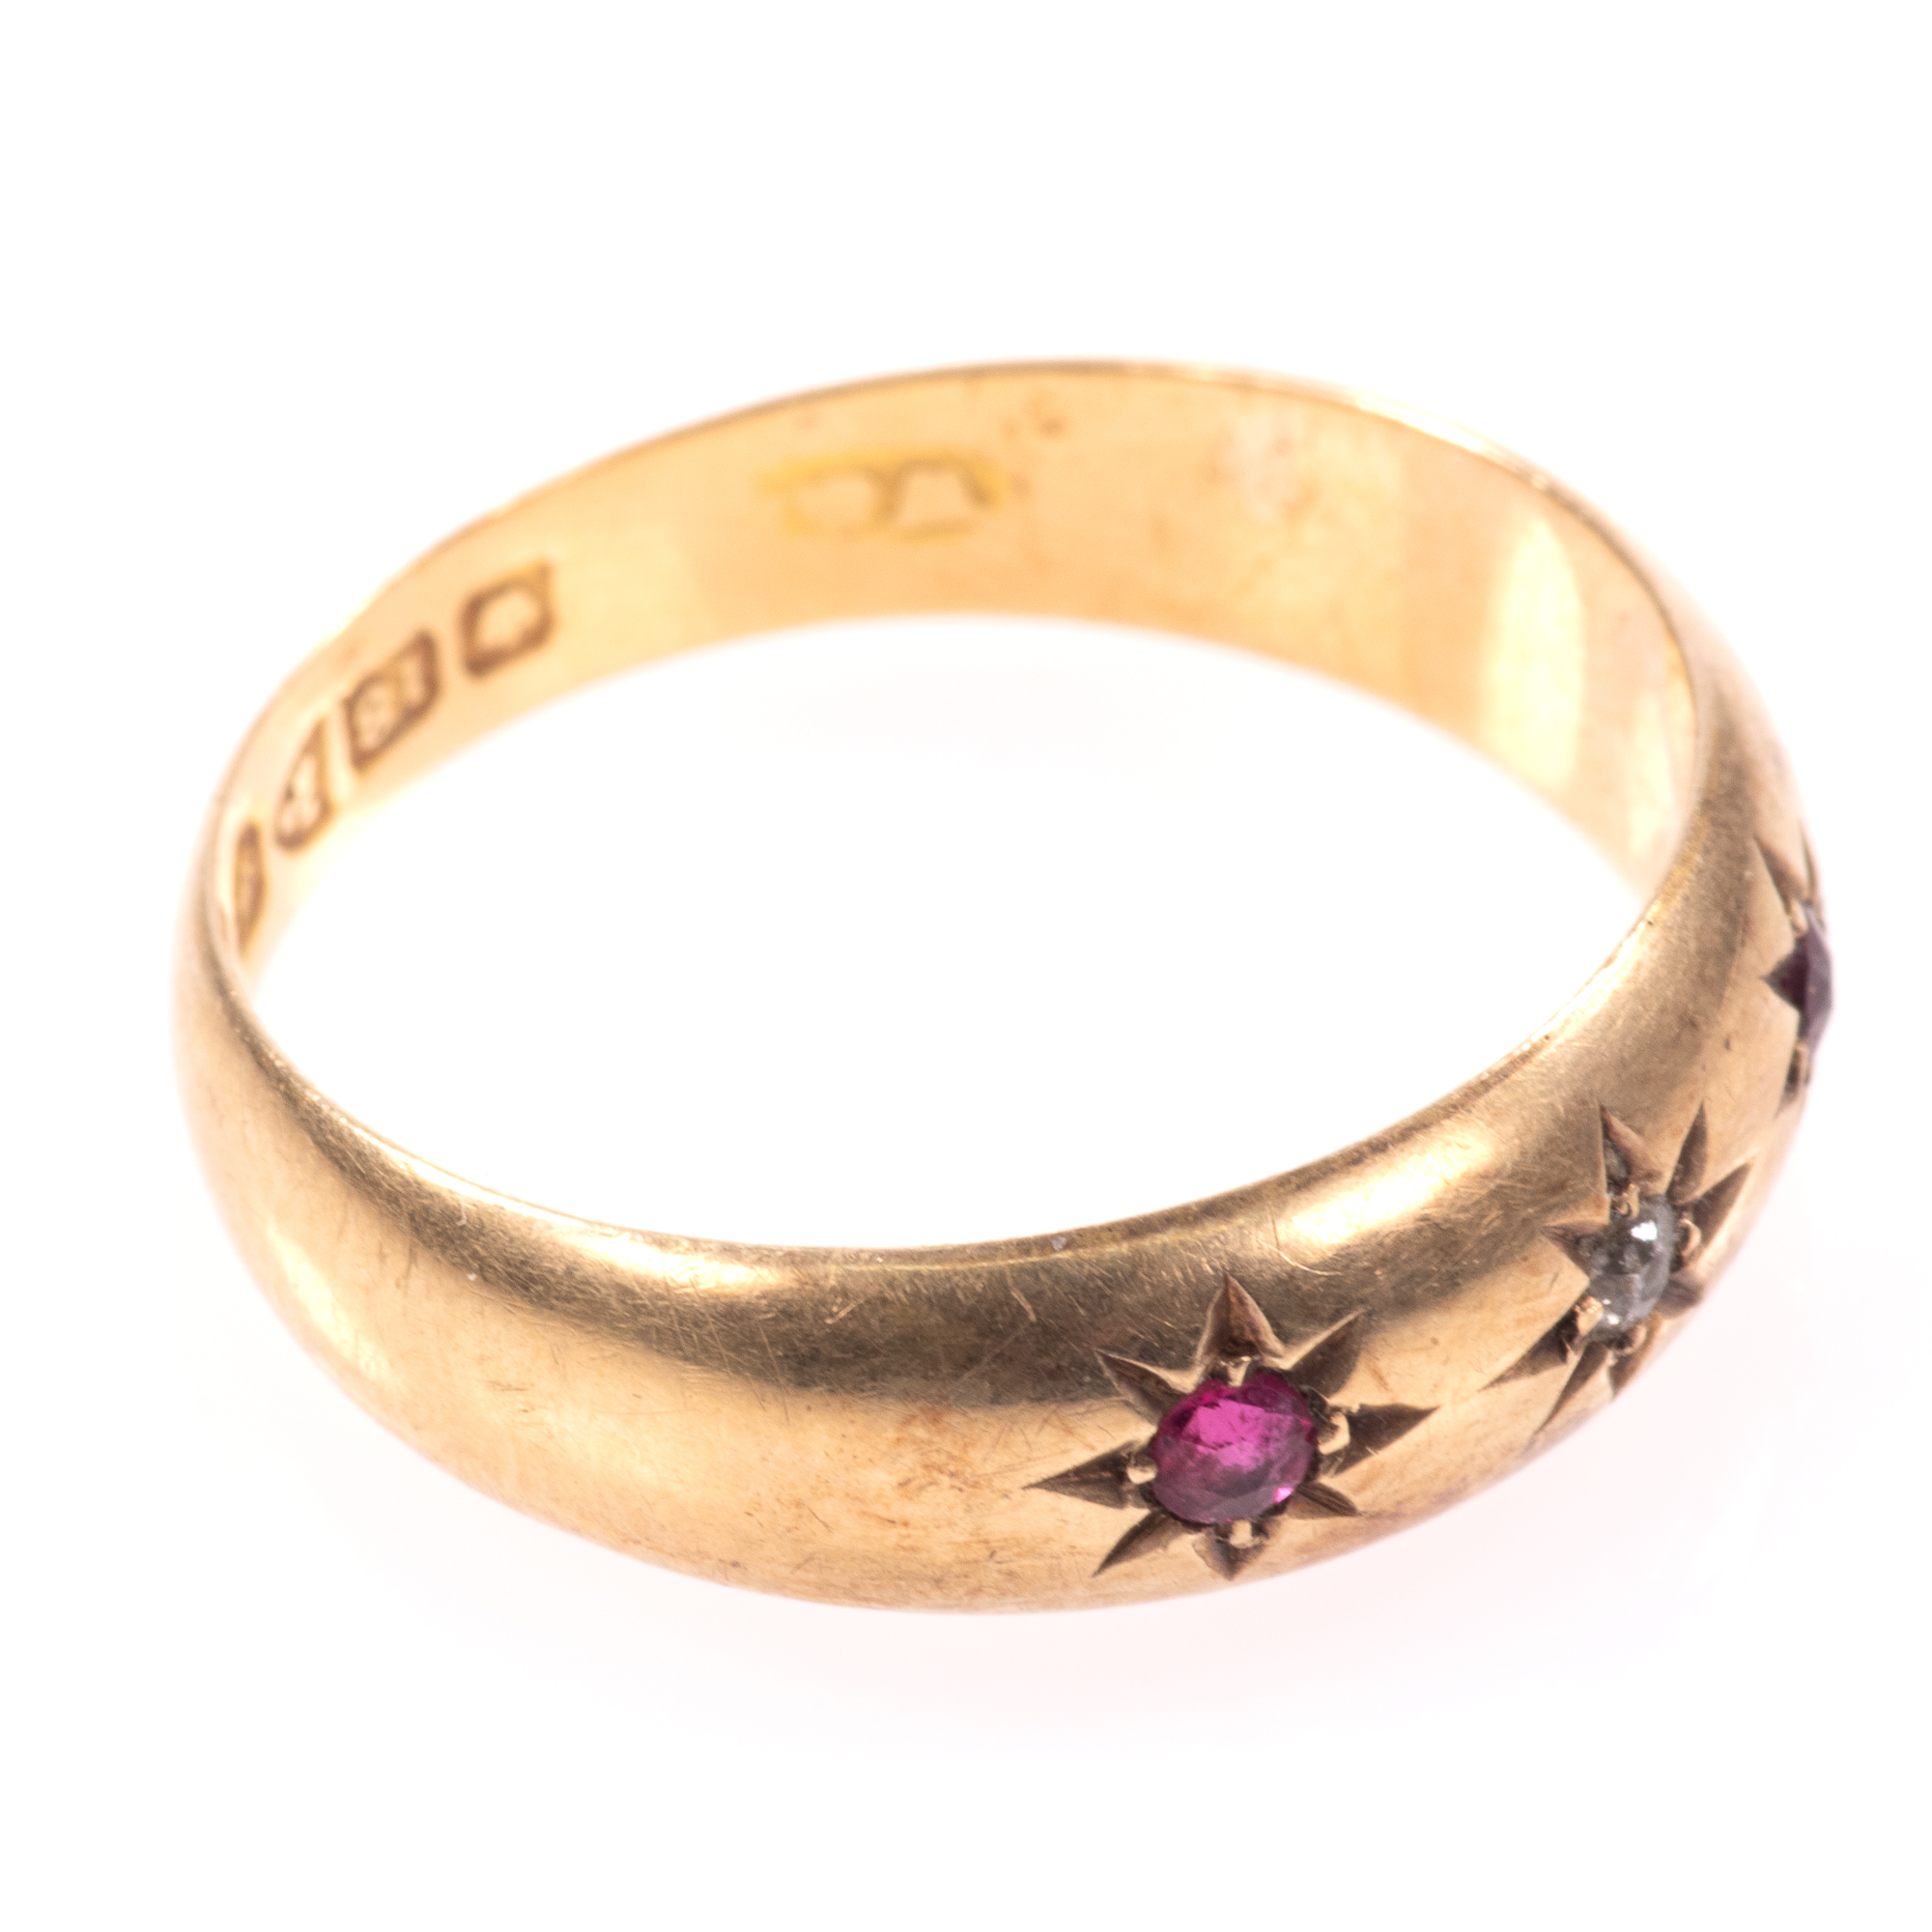 18ct Gold Edwardian Ruby & Diamond Ring Chester 1909 - Image 7 of 8